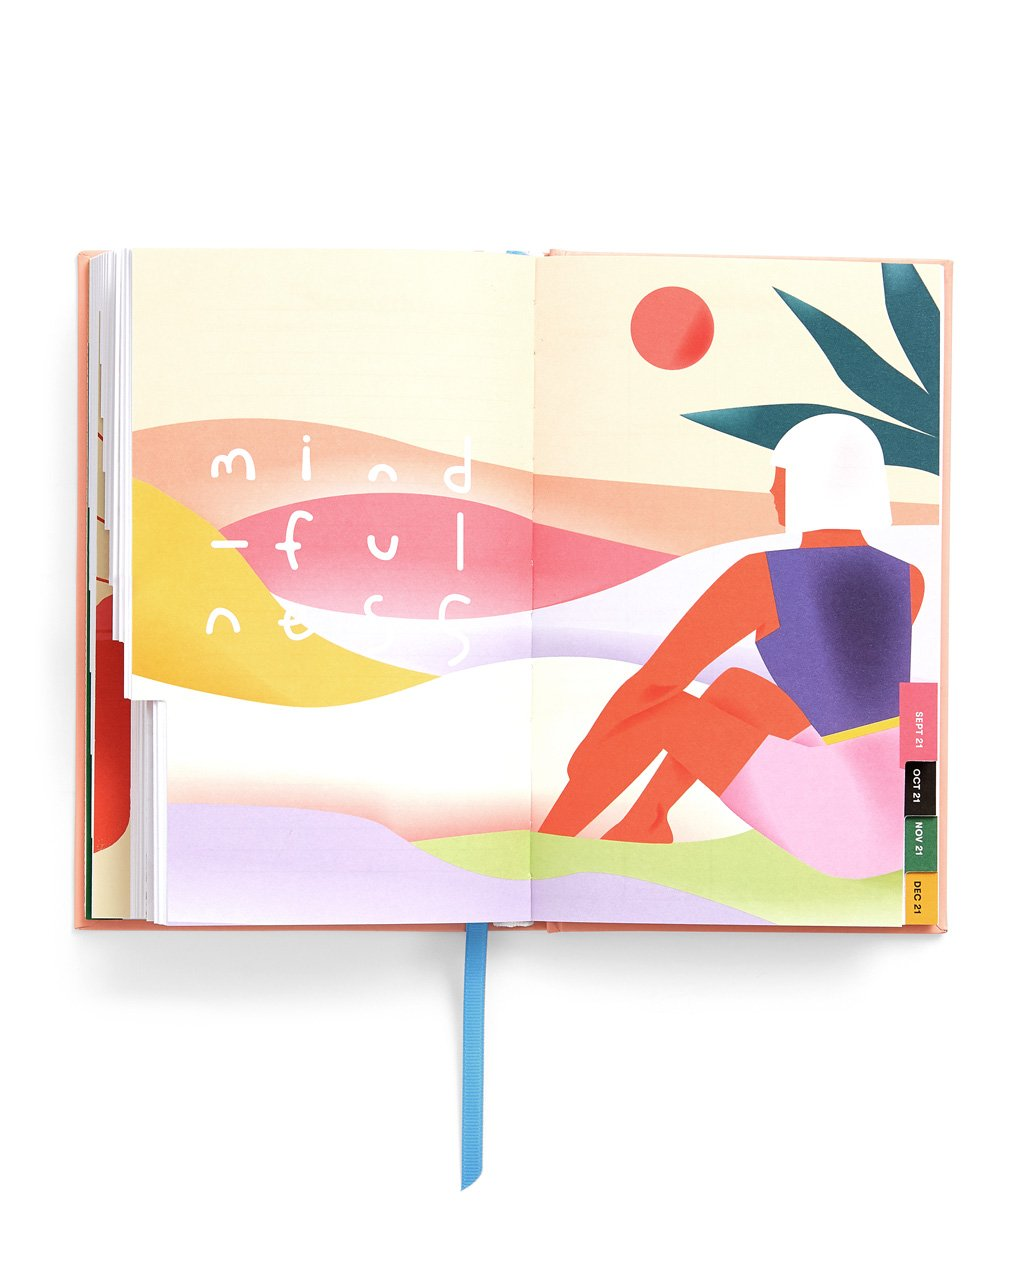 interior image of artwork featured in the planner